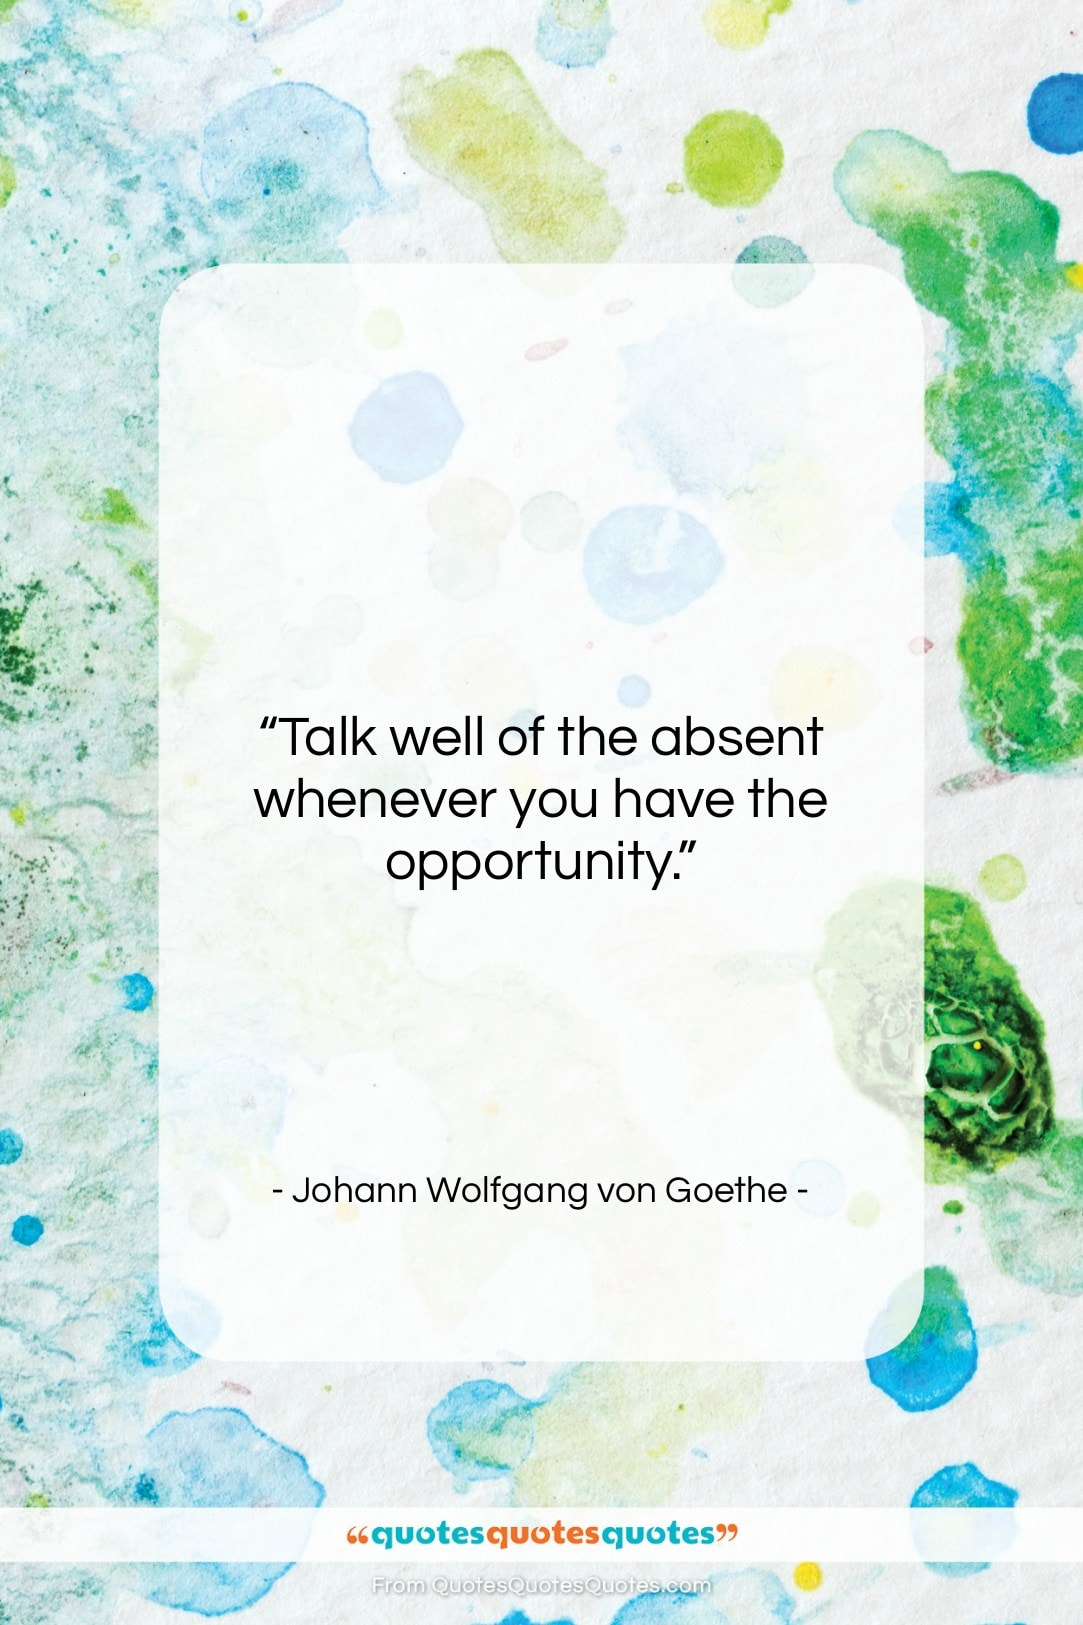 """Johann Wolfgang von Goethe quote: """"Talk well of the absent whenever you…""""- at QuotesQuotesQuotes.com"""